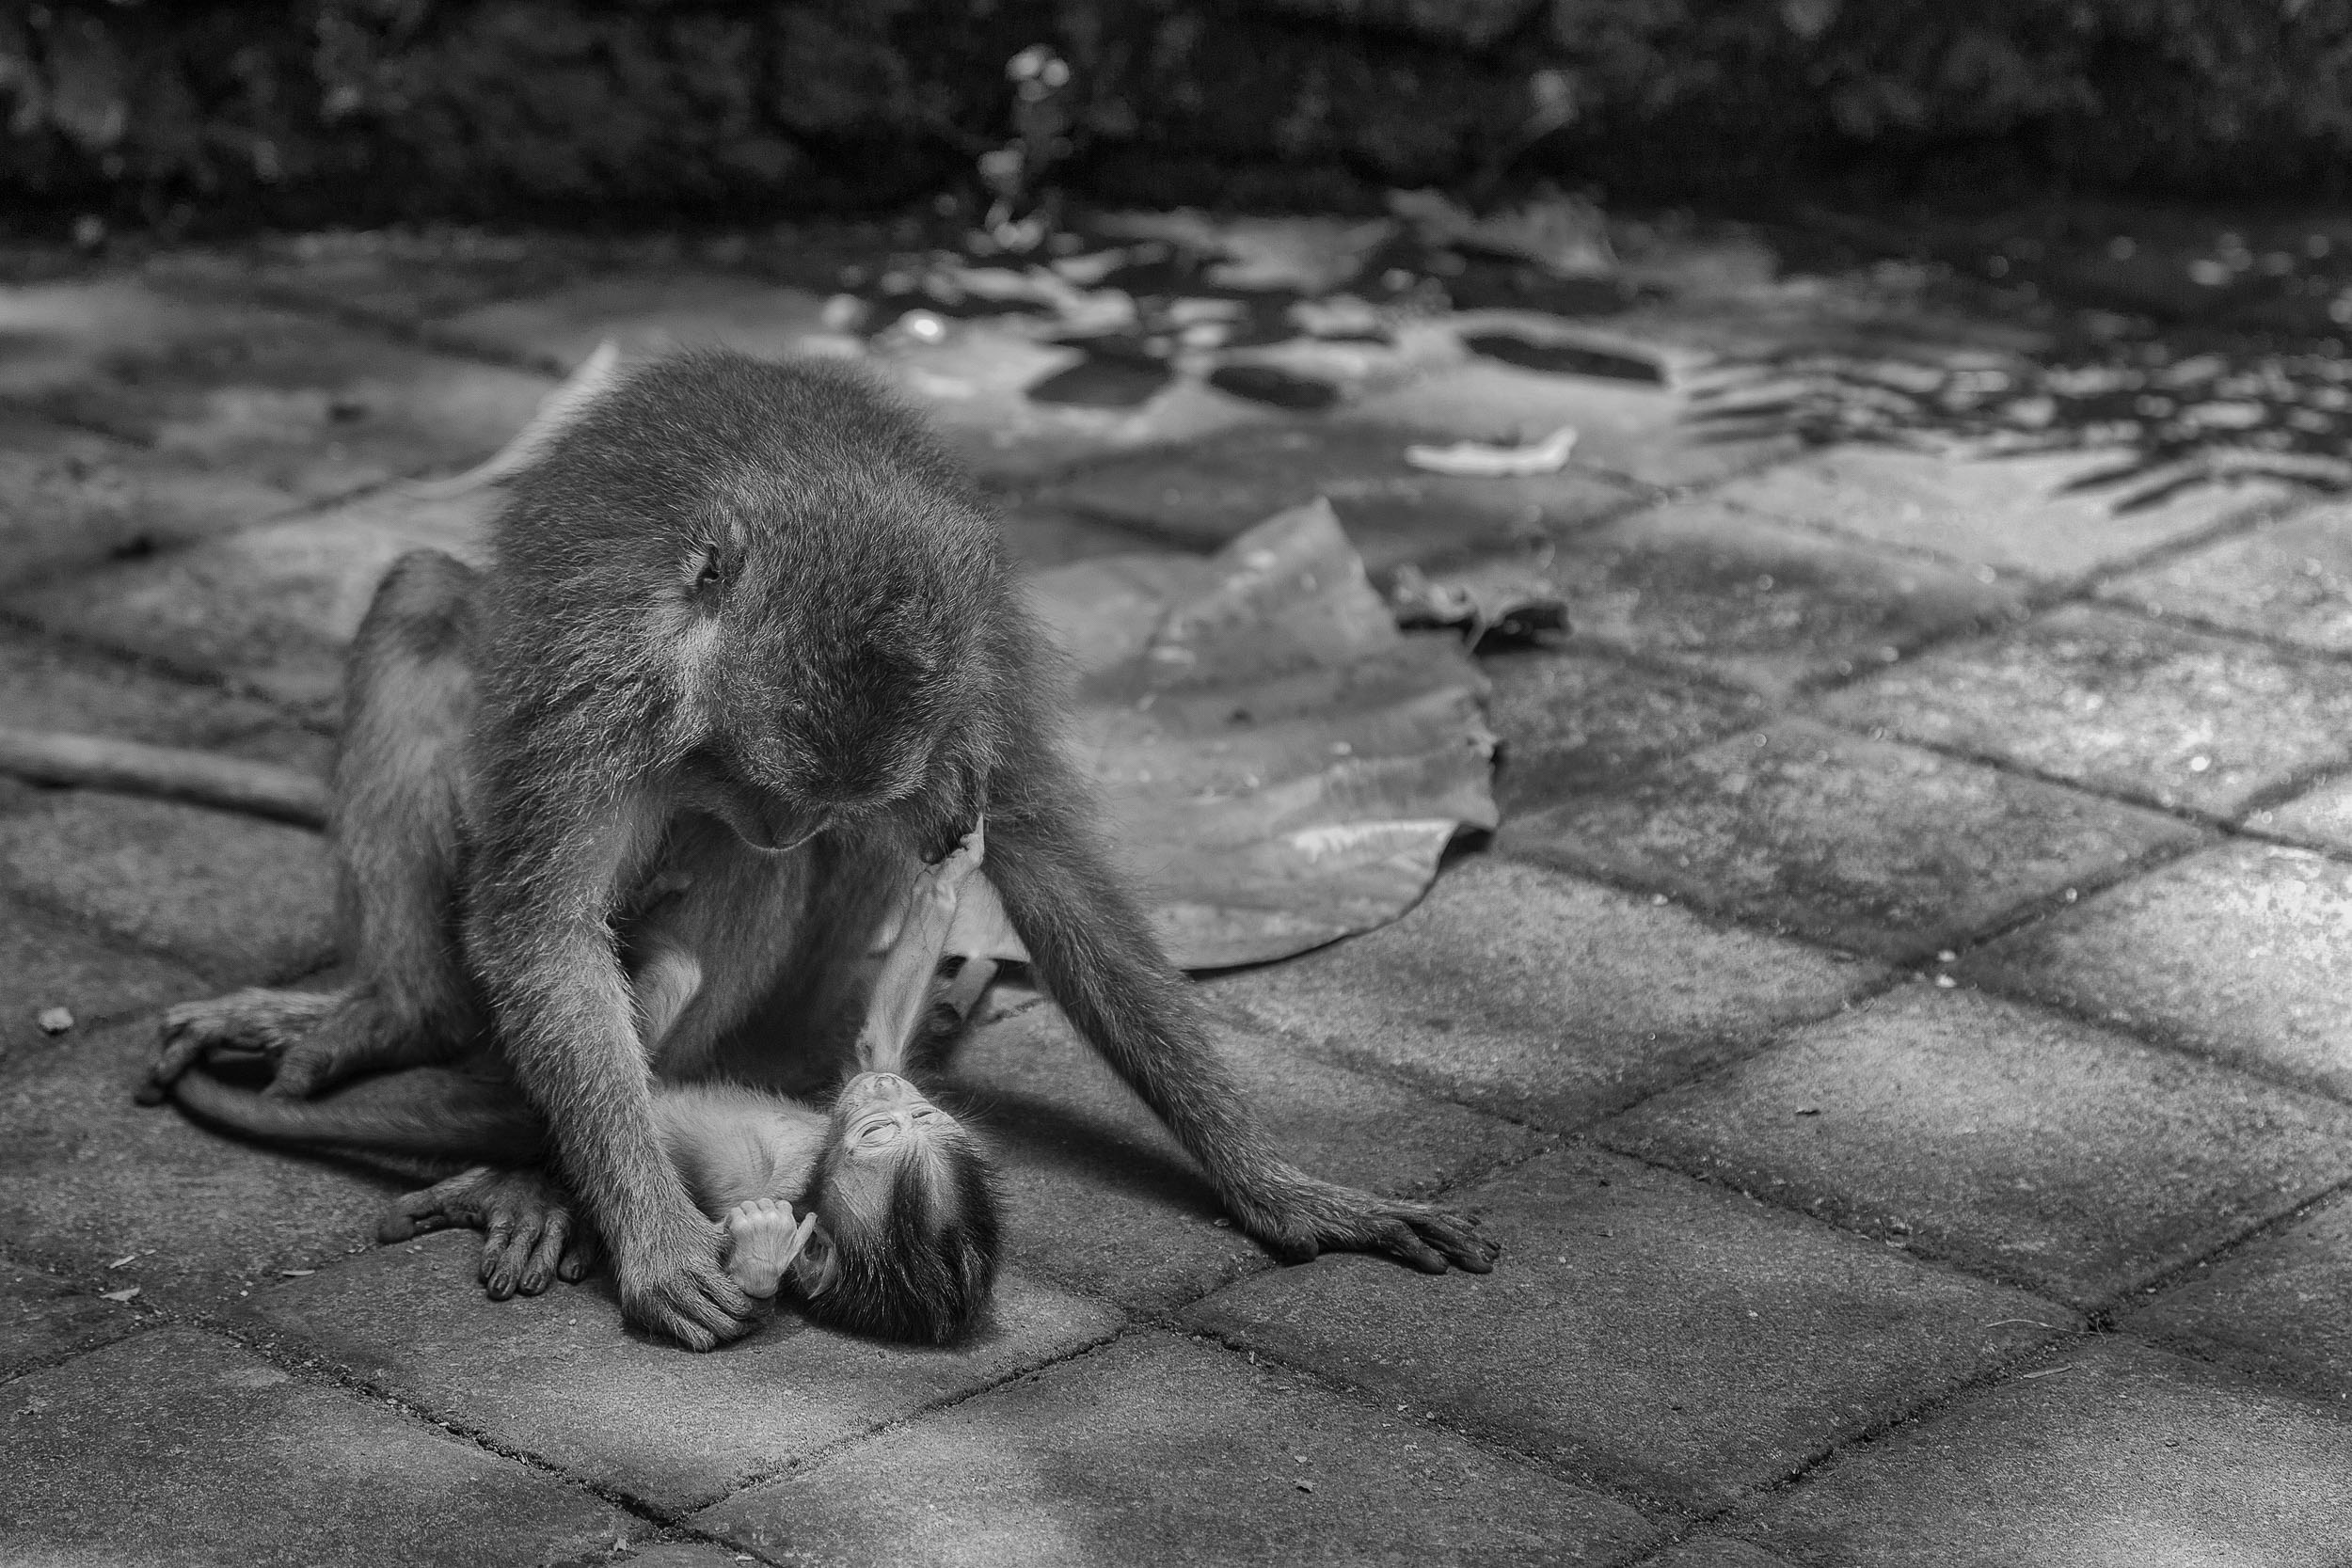 A lovely, intimate image of a  baby monkey with its mother  in the  Monkey Forest  in  Ubud, Bali .